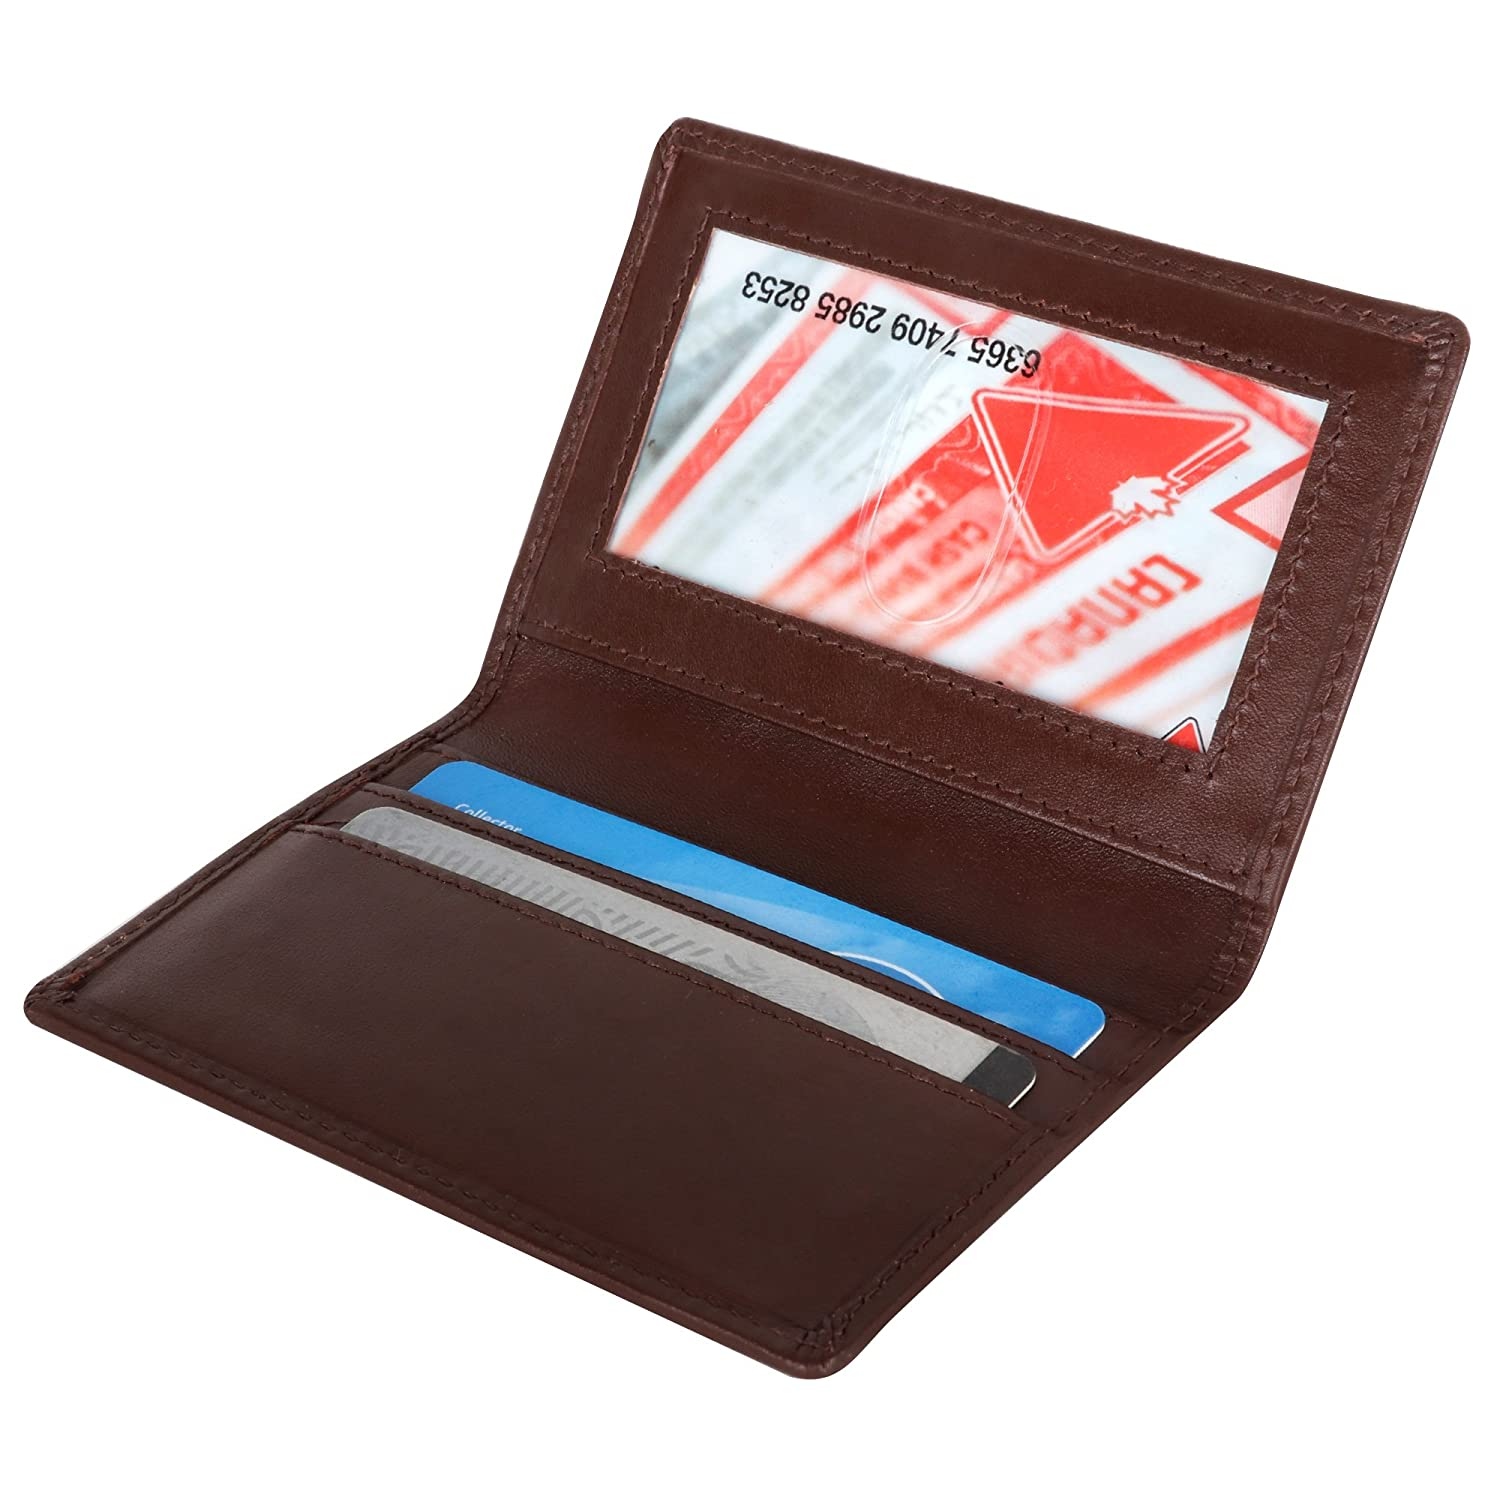 Men's Slim Leather RFID Card Wallet, Thin Minimalist Front Pocket Wallet SD 026 (Brown)